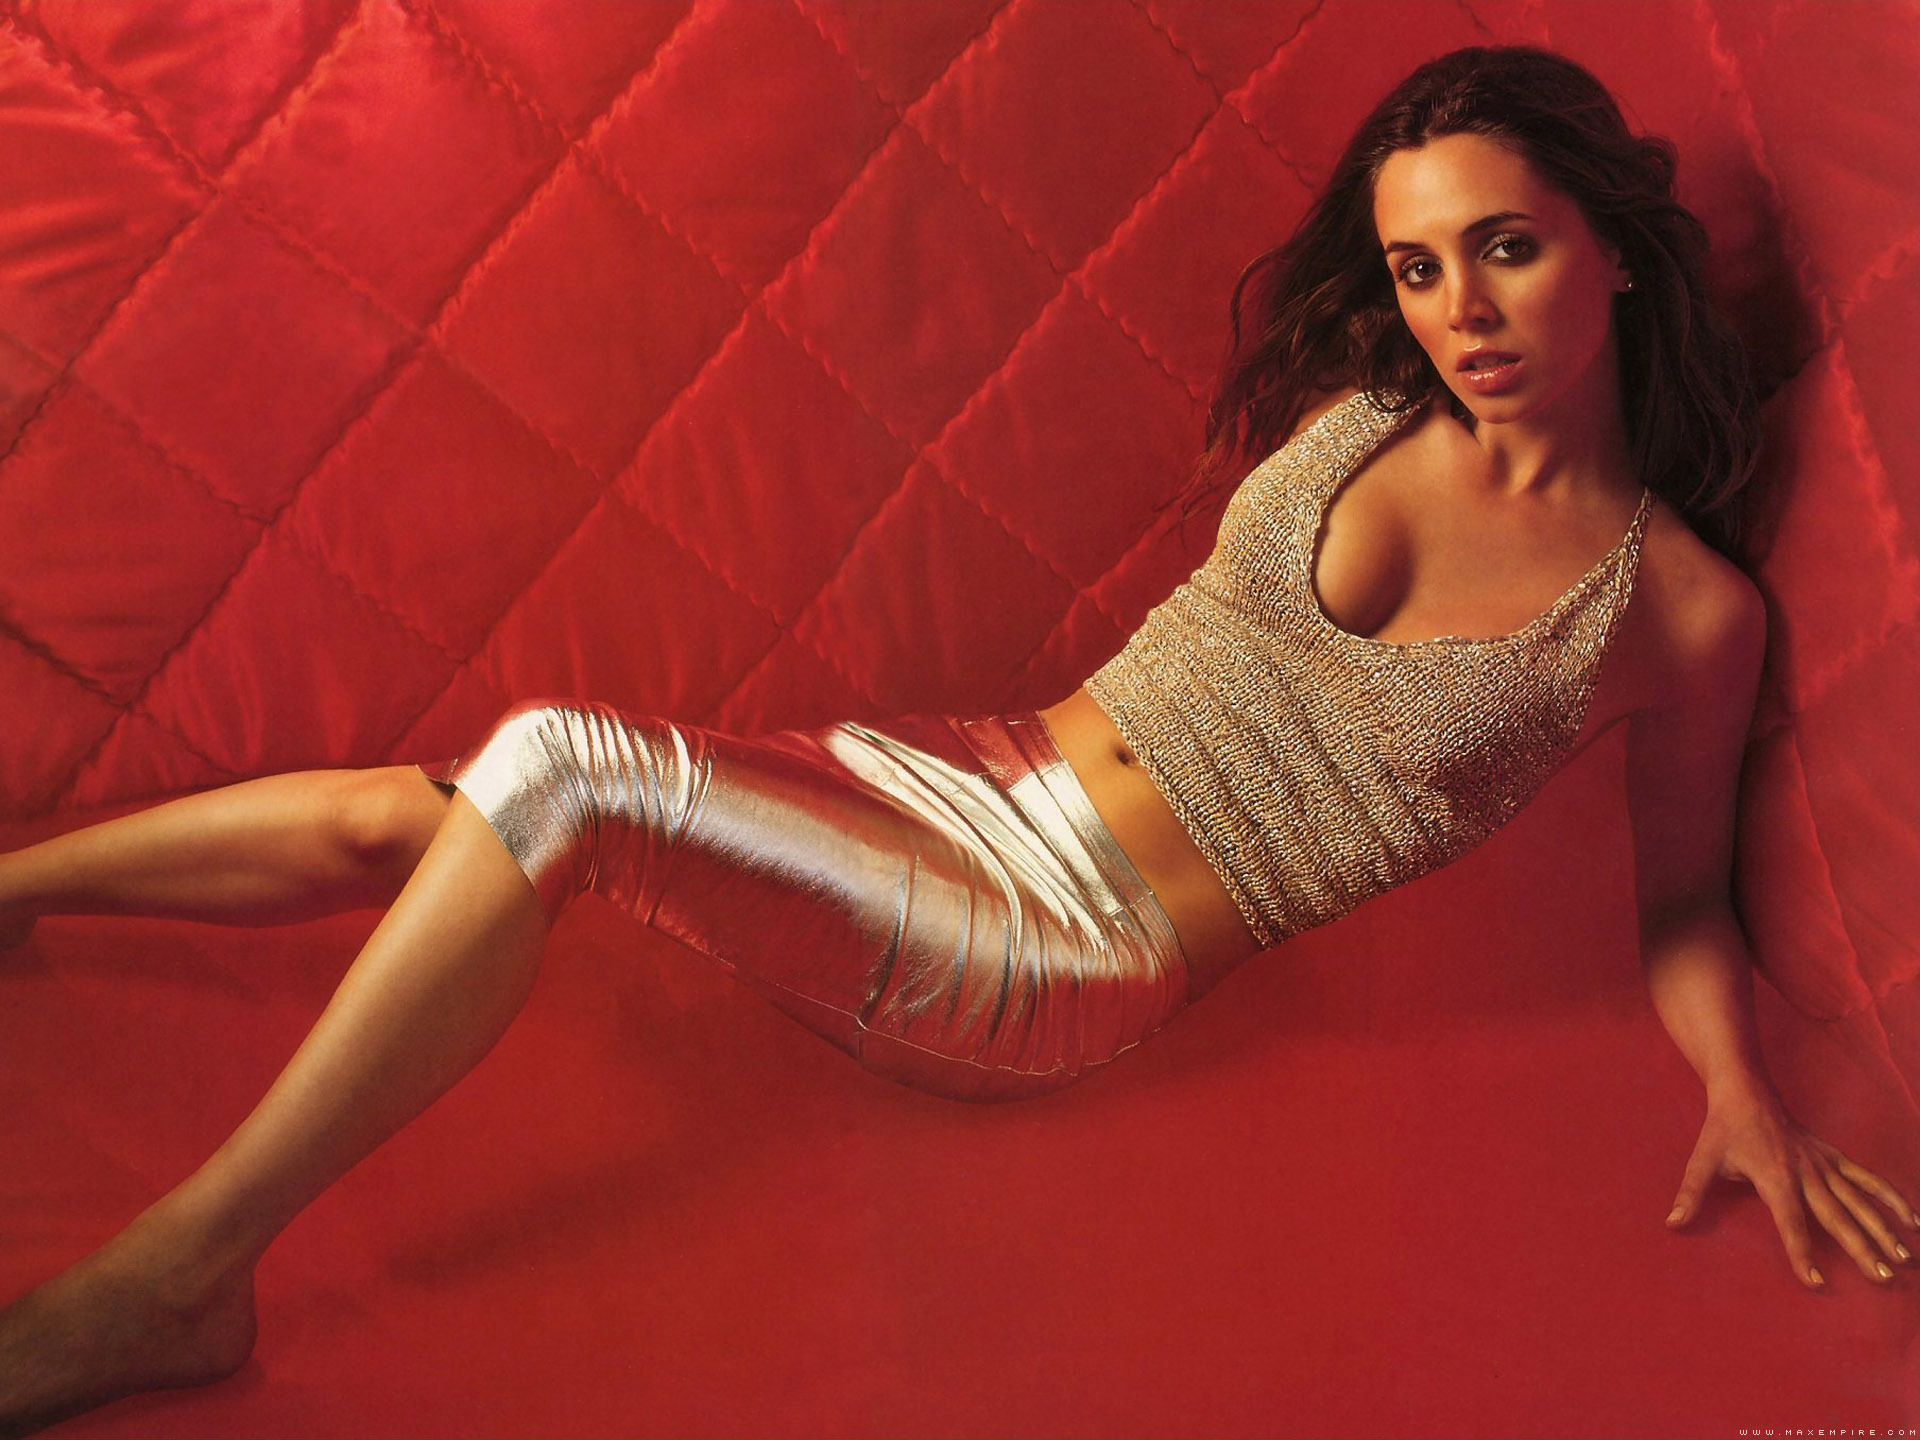 eliza dushku plastic surgery photo - 1